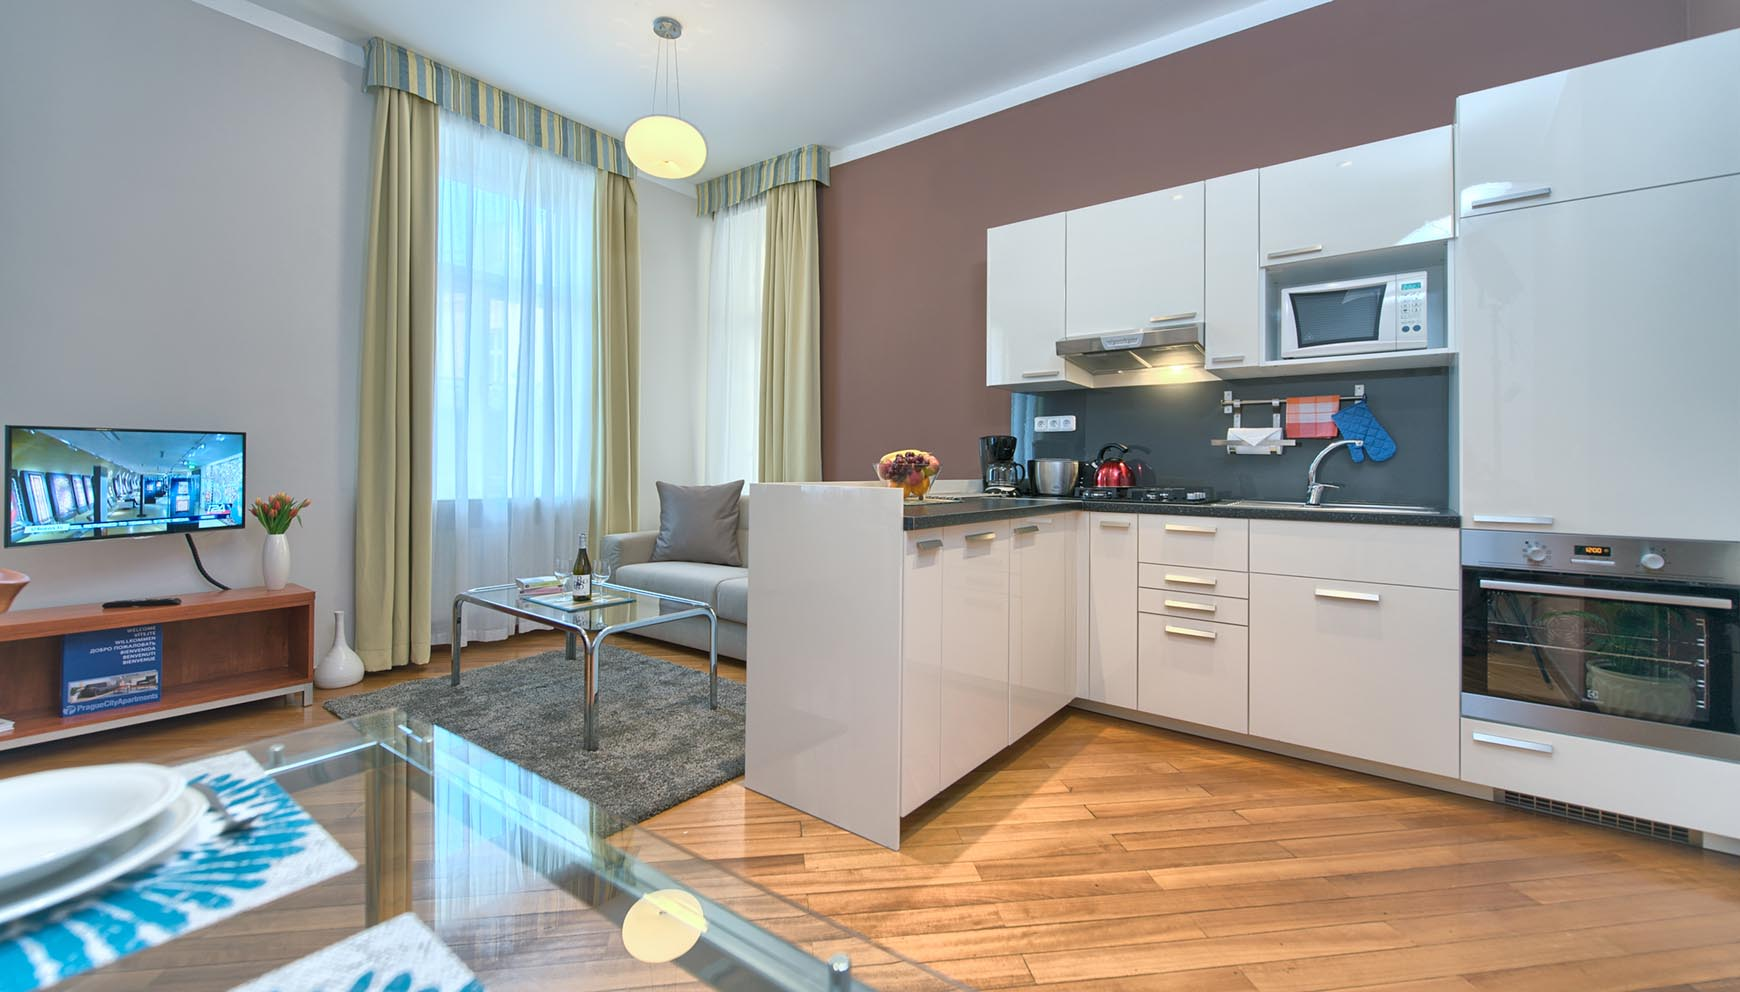 Residence Masna studio apartment type 1 kitchen